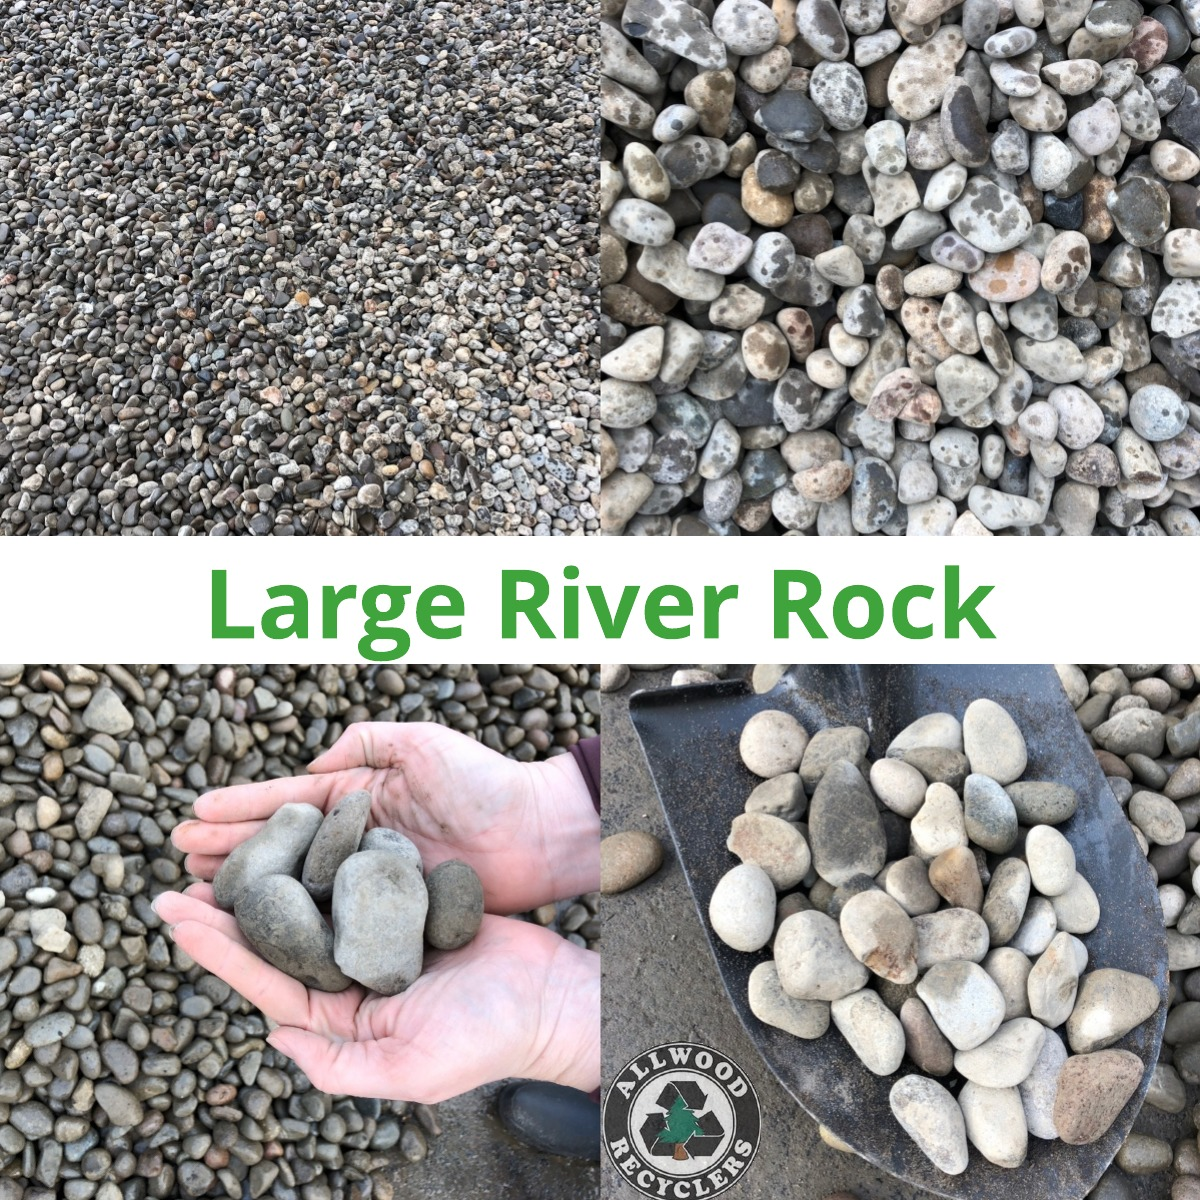 Large River Rock